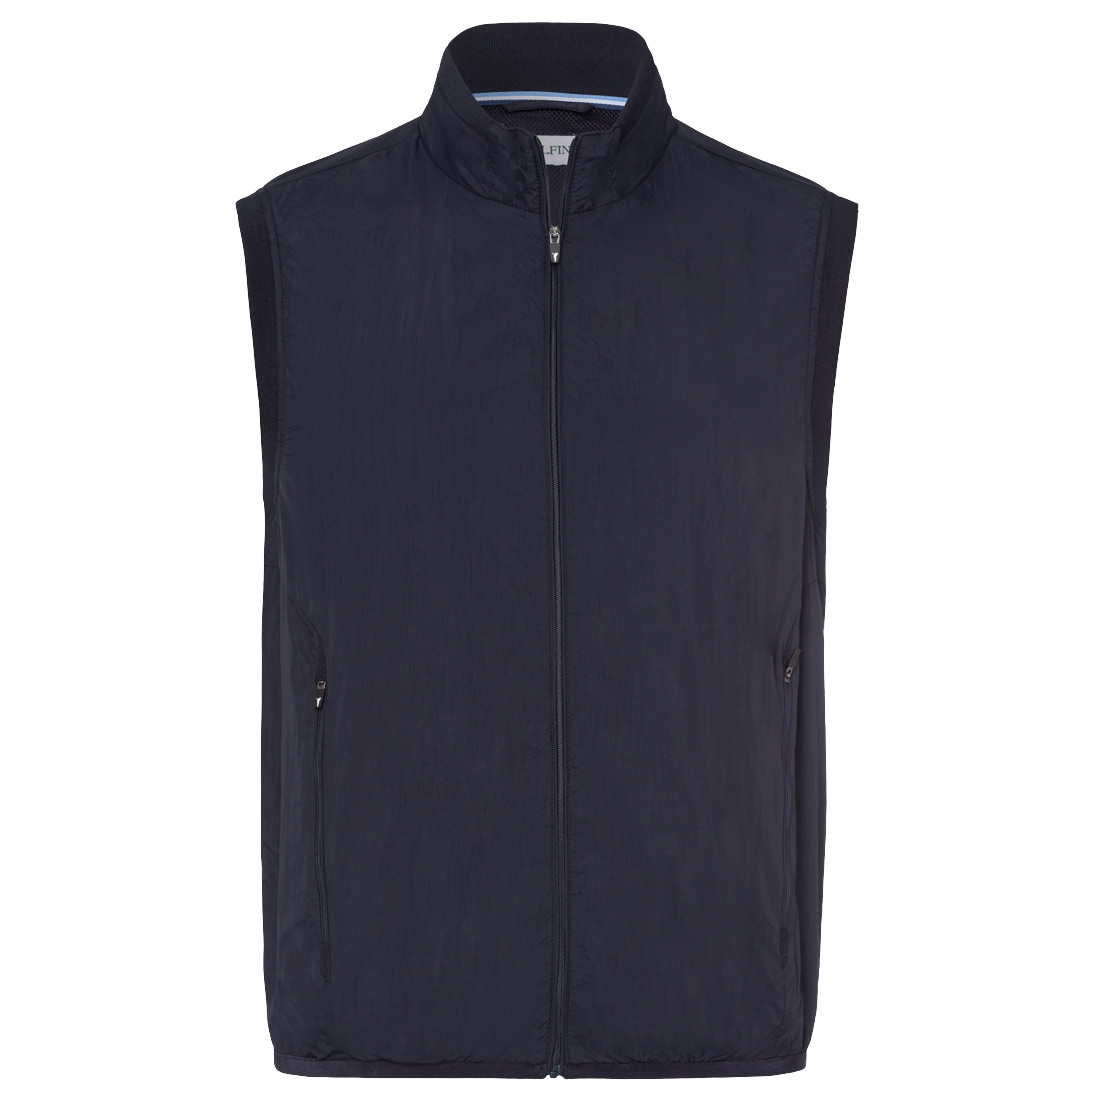 Professional men's golf waistcoat with wind protection, unlined, light and breathable